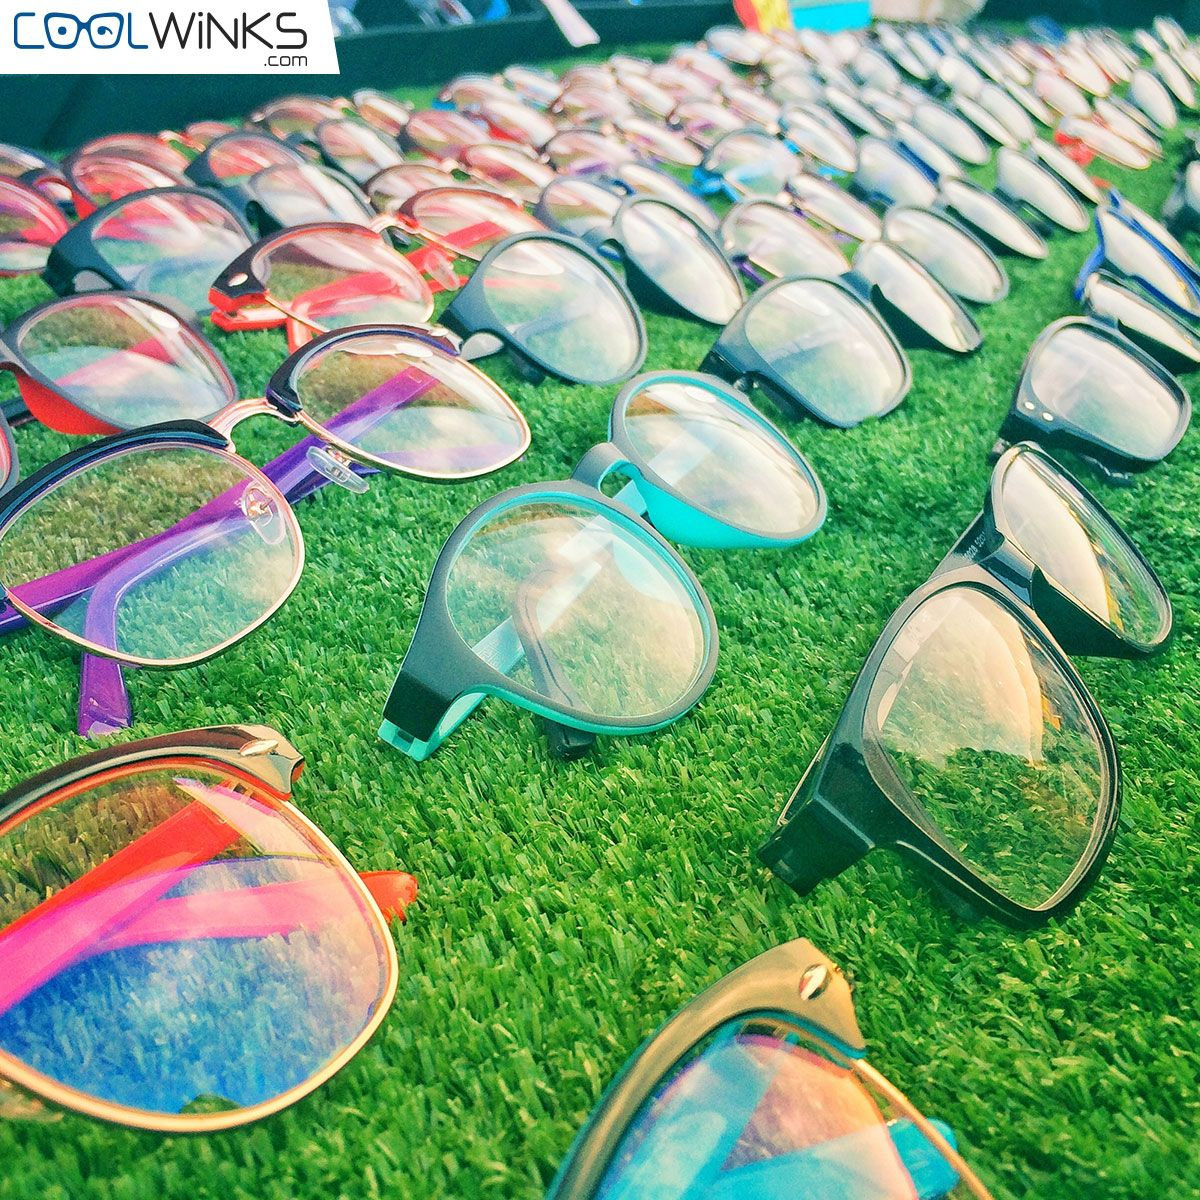 7783fbf17d It s Raining Offers  Coolwinks! Now Get 2 Eyeglasses with Lenses at Just Rs.1299.  Pay using CoolCash   Get additional discount. Hurry! Buy Now.